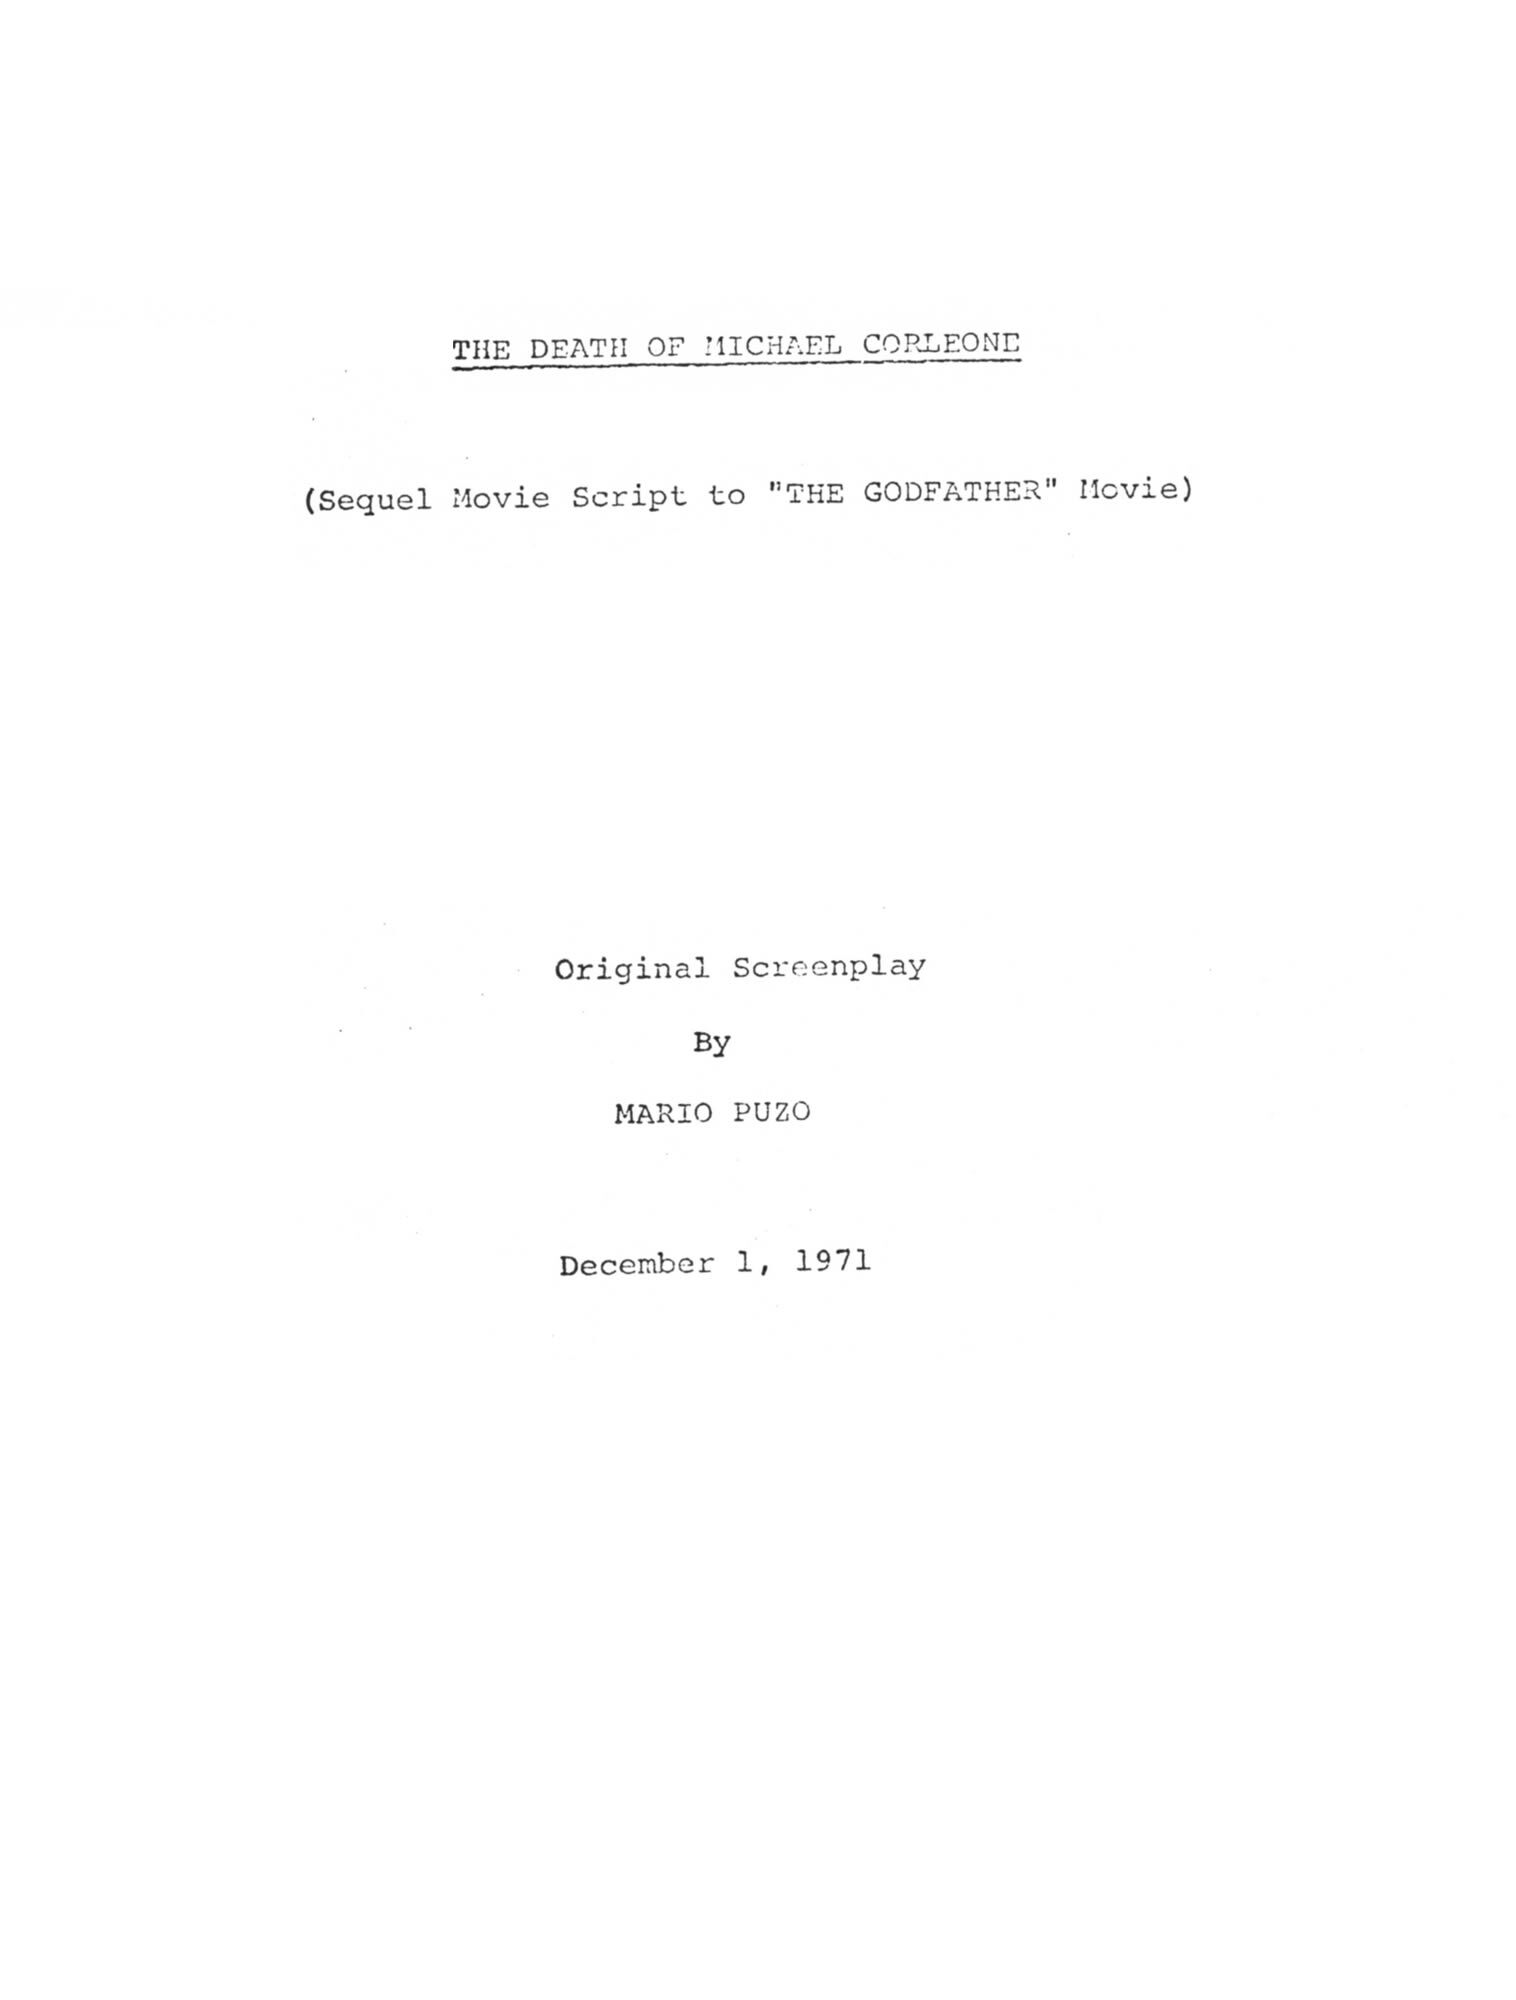 First draft by Mario Puzo